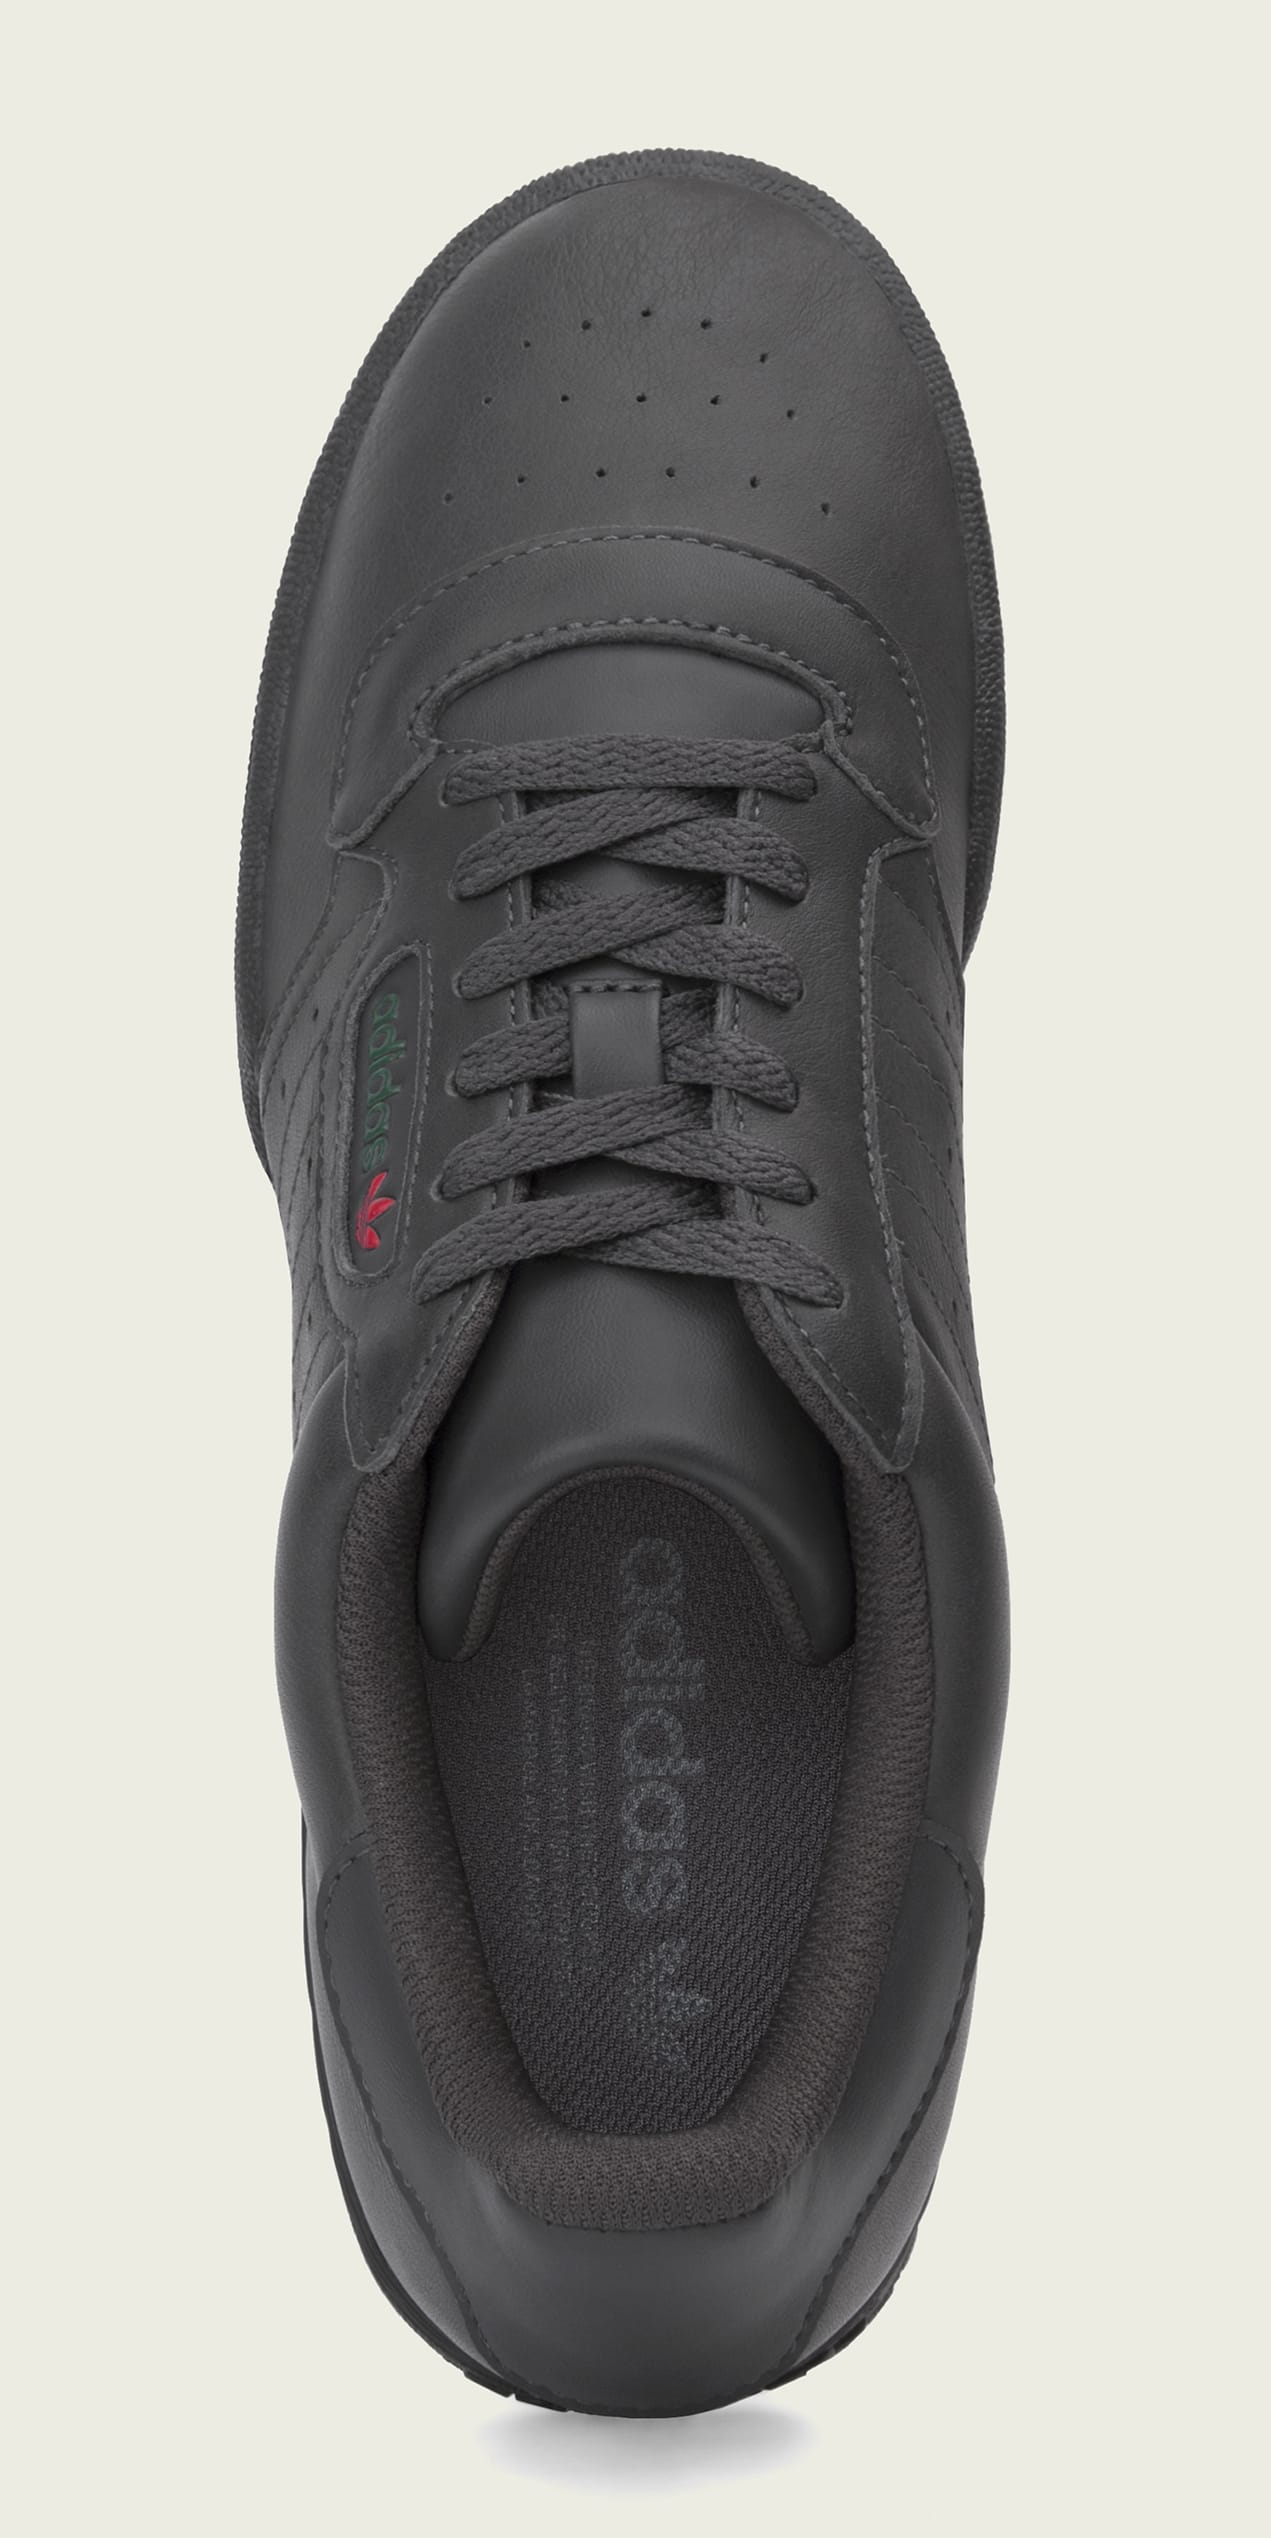 ce6b2de8362 Image via Adidas Adidas Yeezy Powerphase  Core Black  CG6420 (Top)